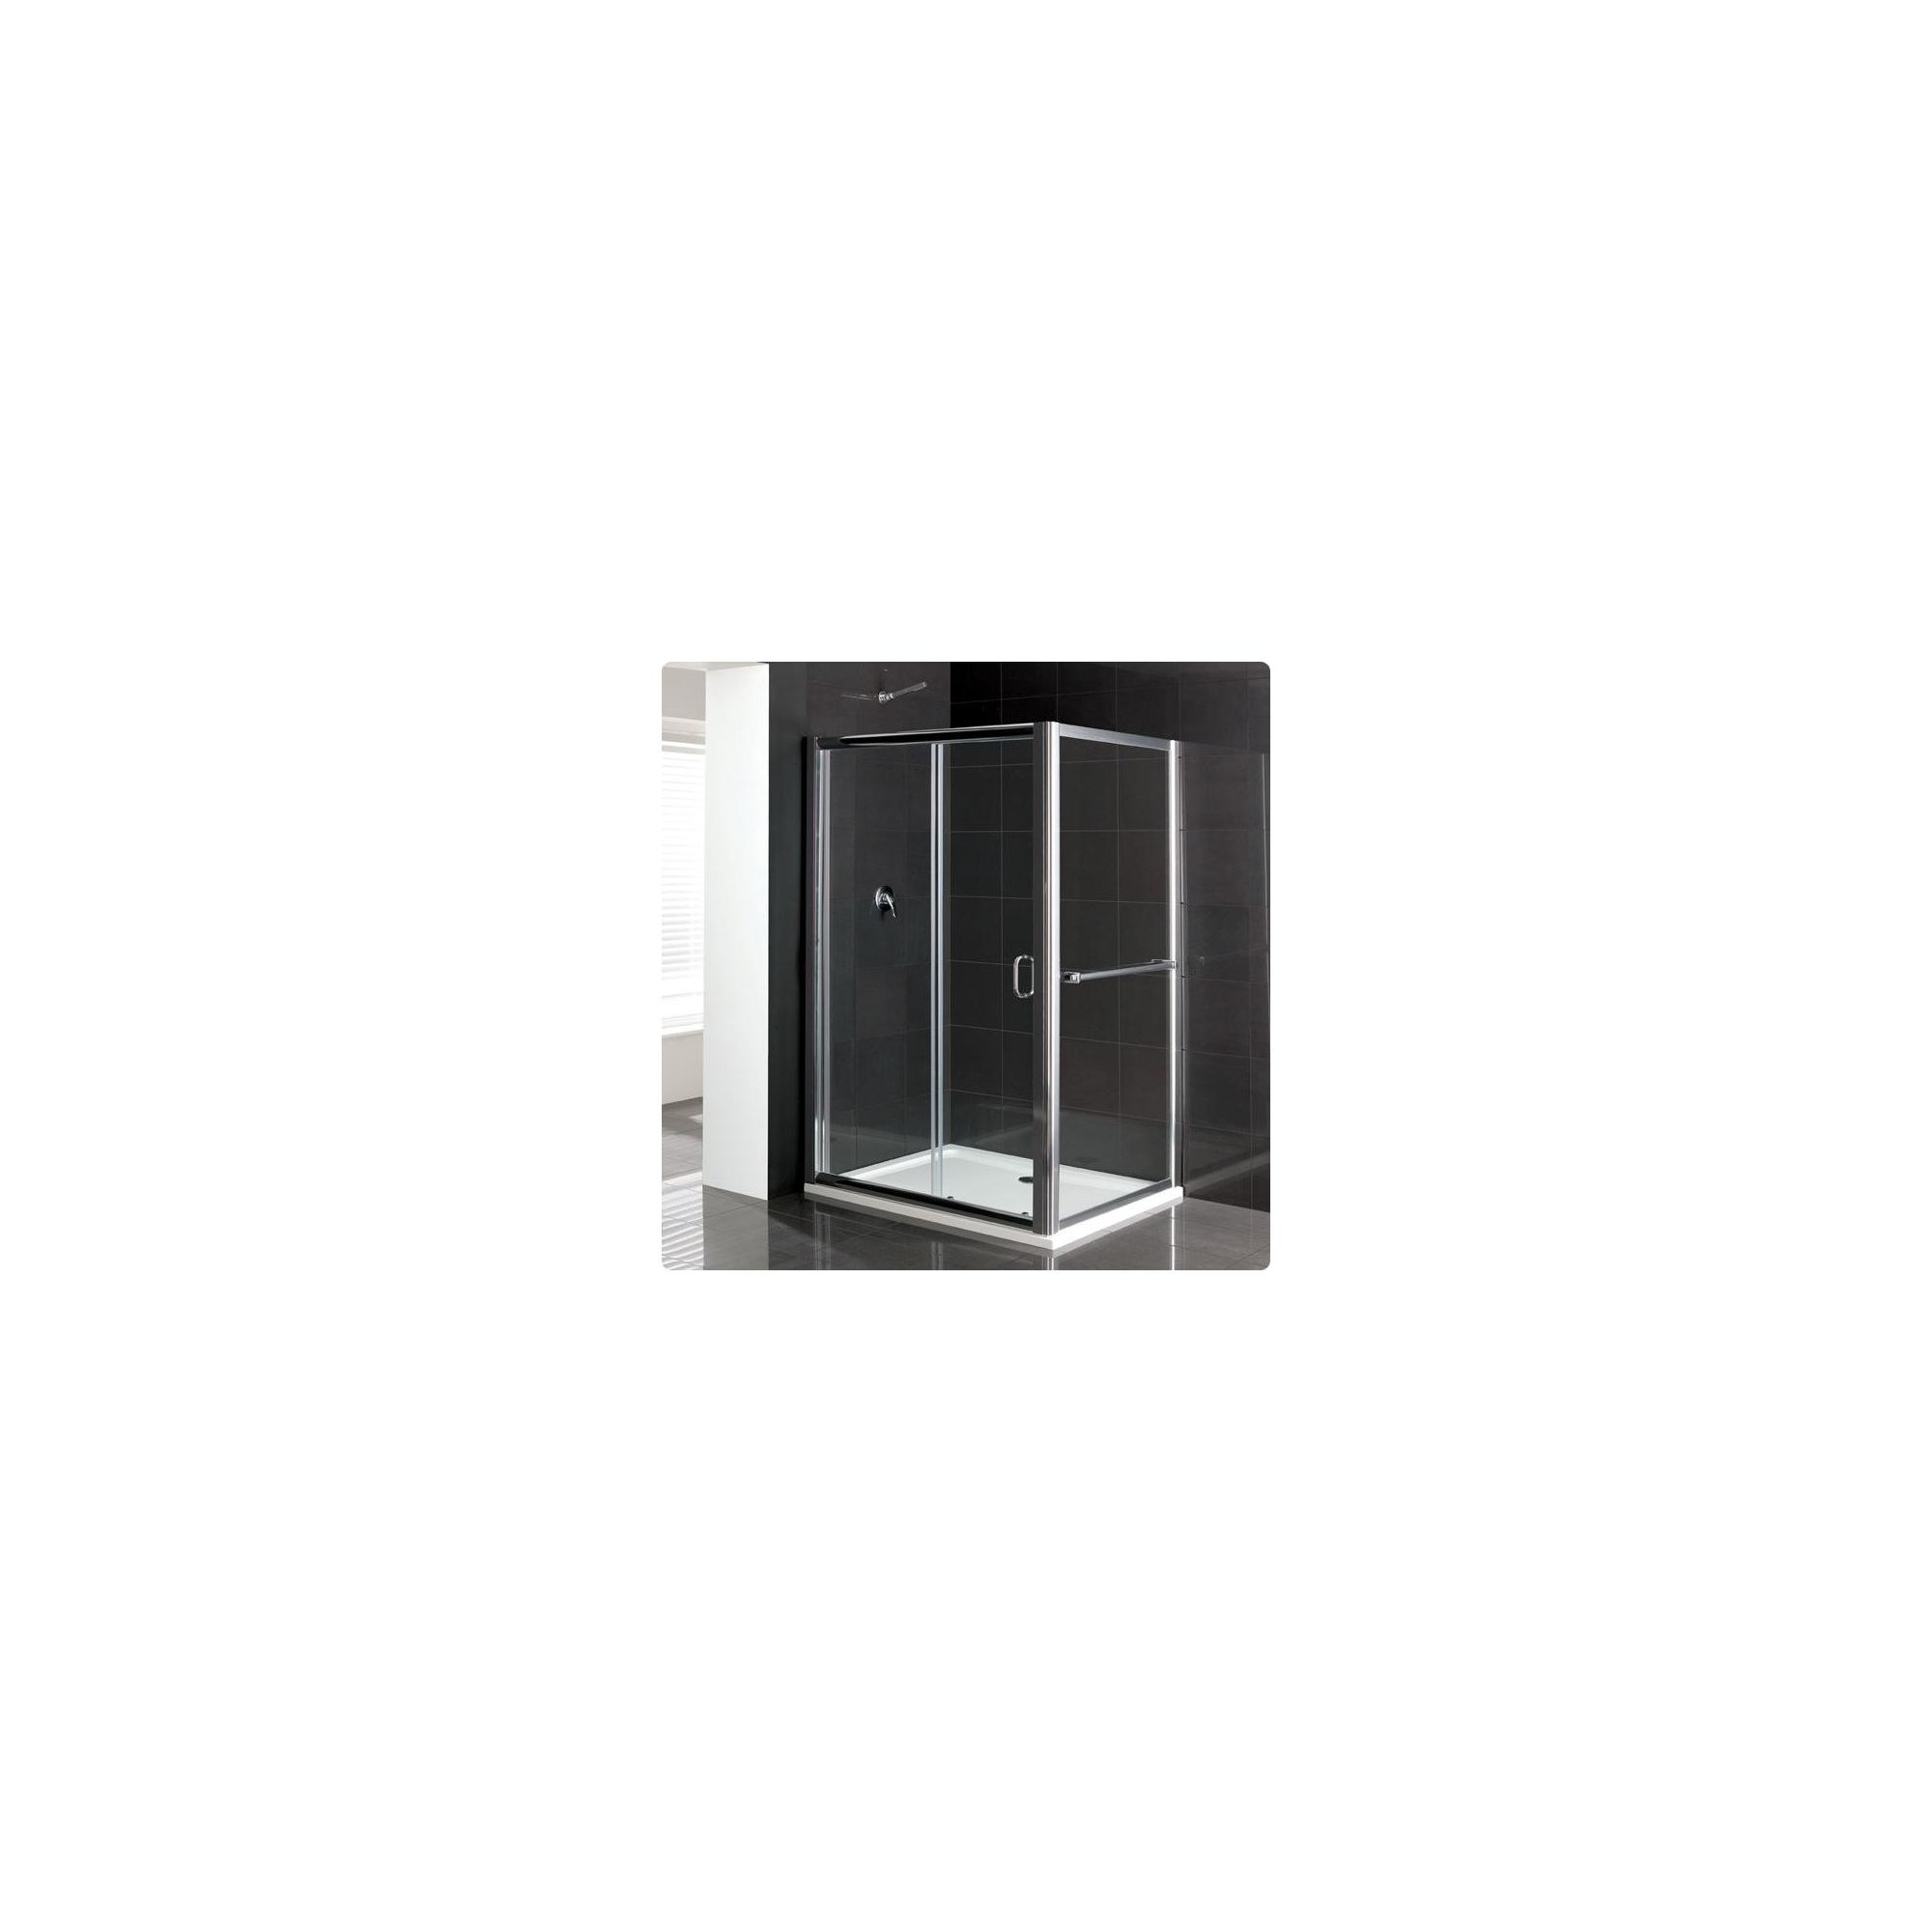 Duchy Elite Silver Sliding Door Shower Enclosure with Towel Rail, 1700mm x 900mm, Standard Tray, 6mm Glass at Tescos Direct